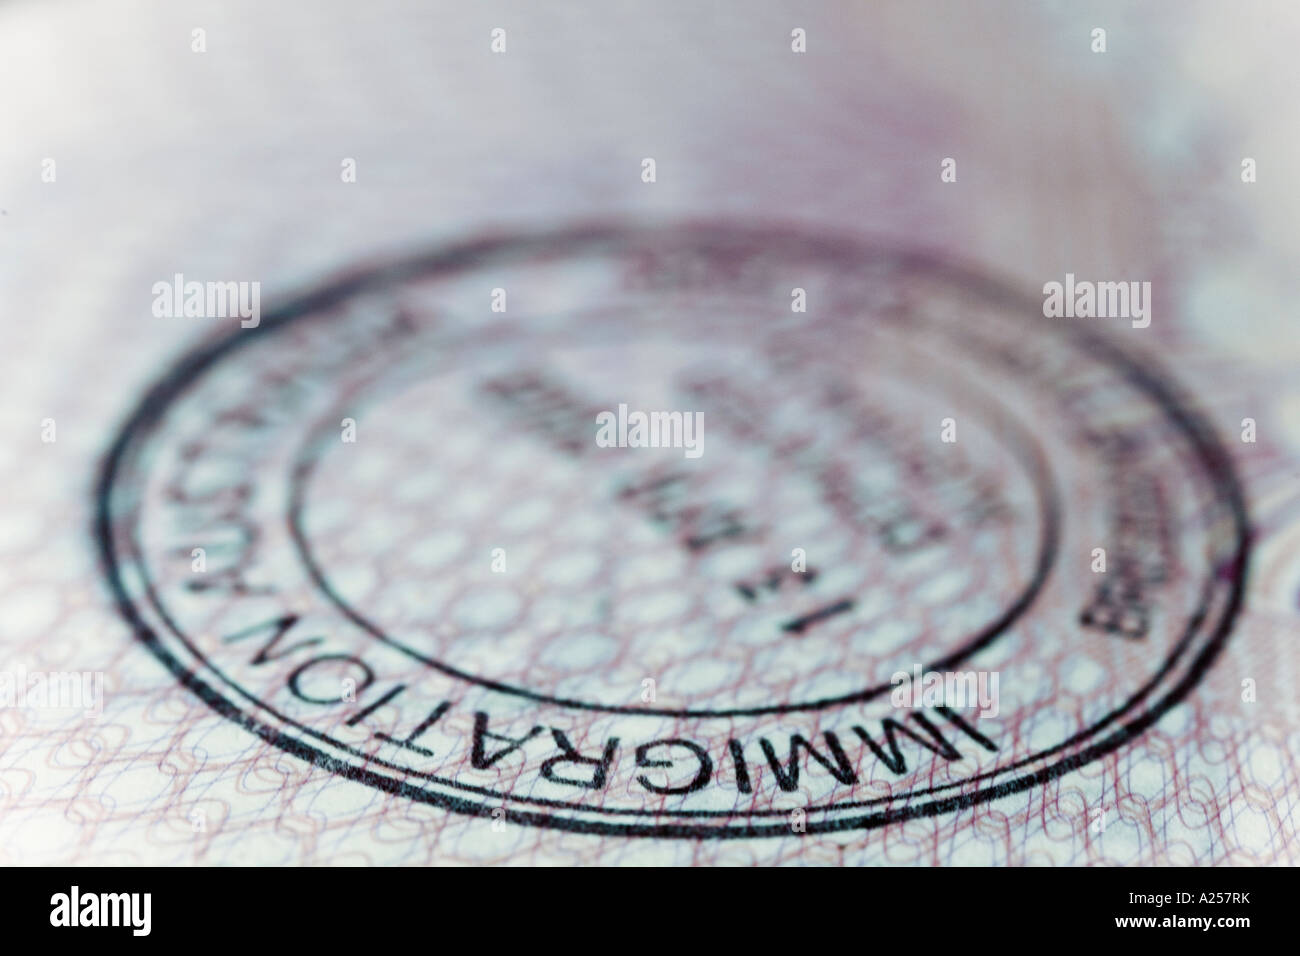 Immigration stamp in a British passport - Stock Image